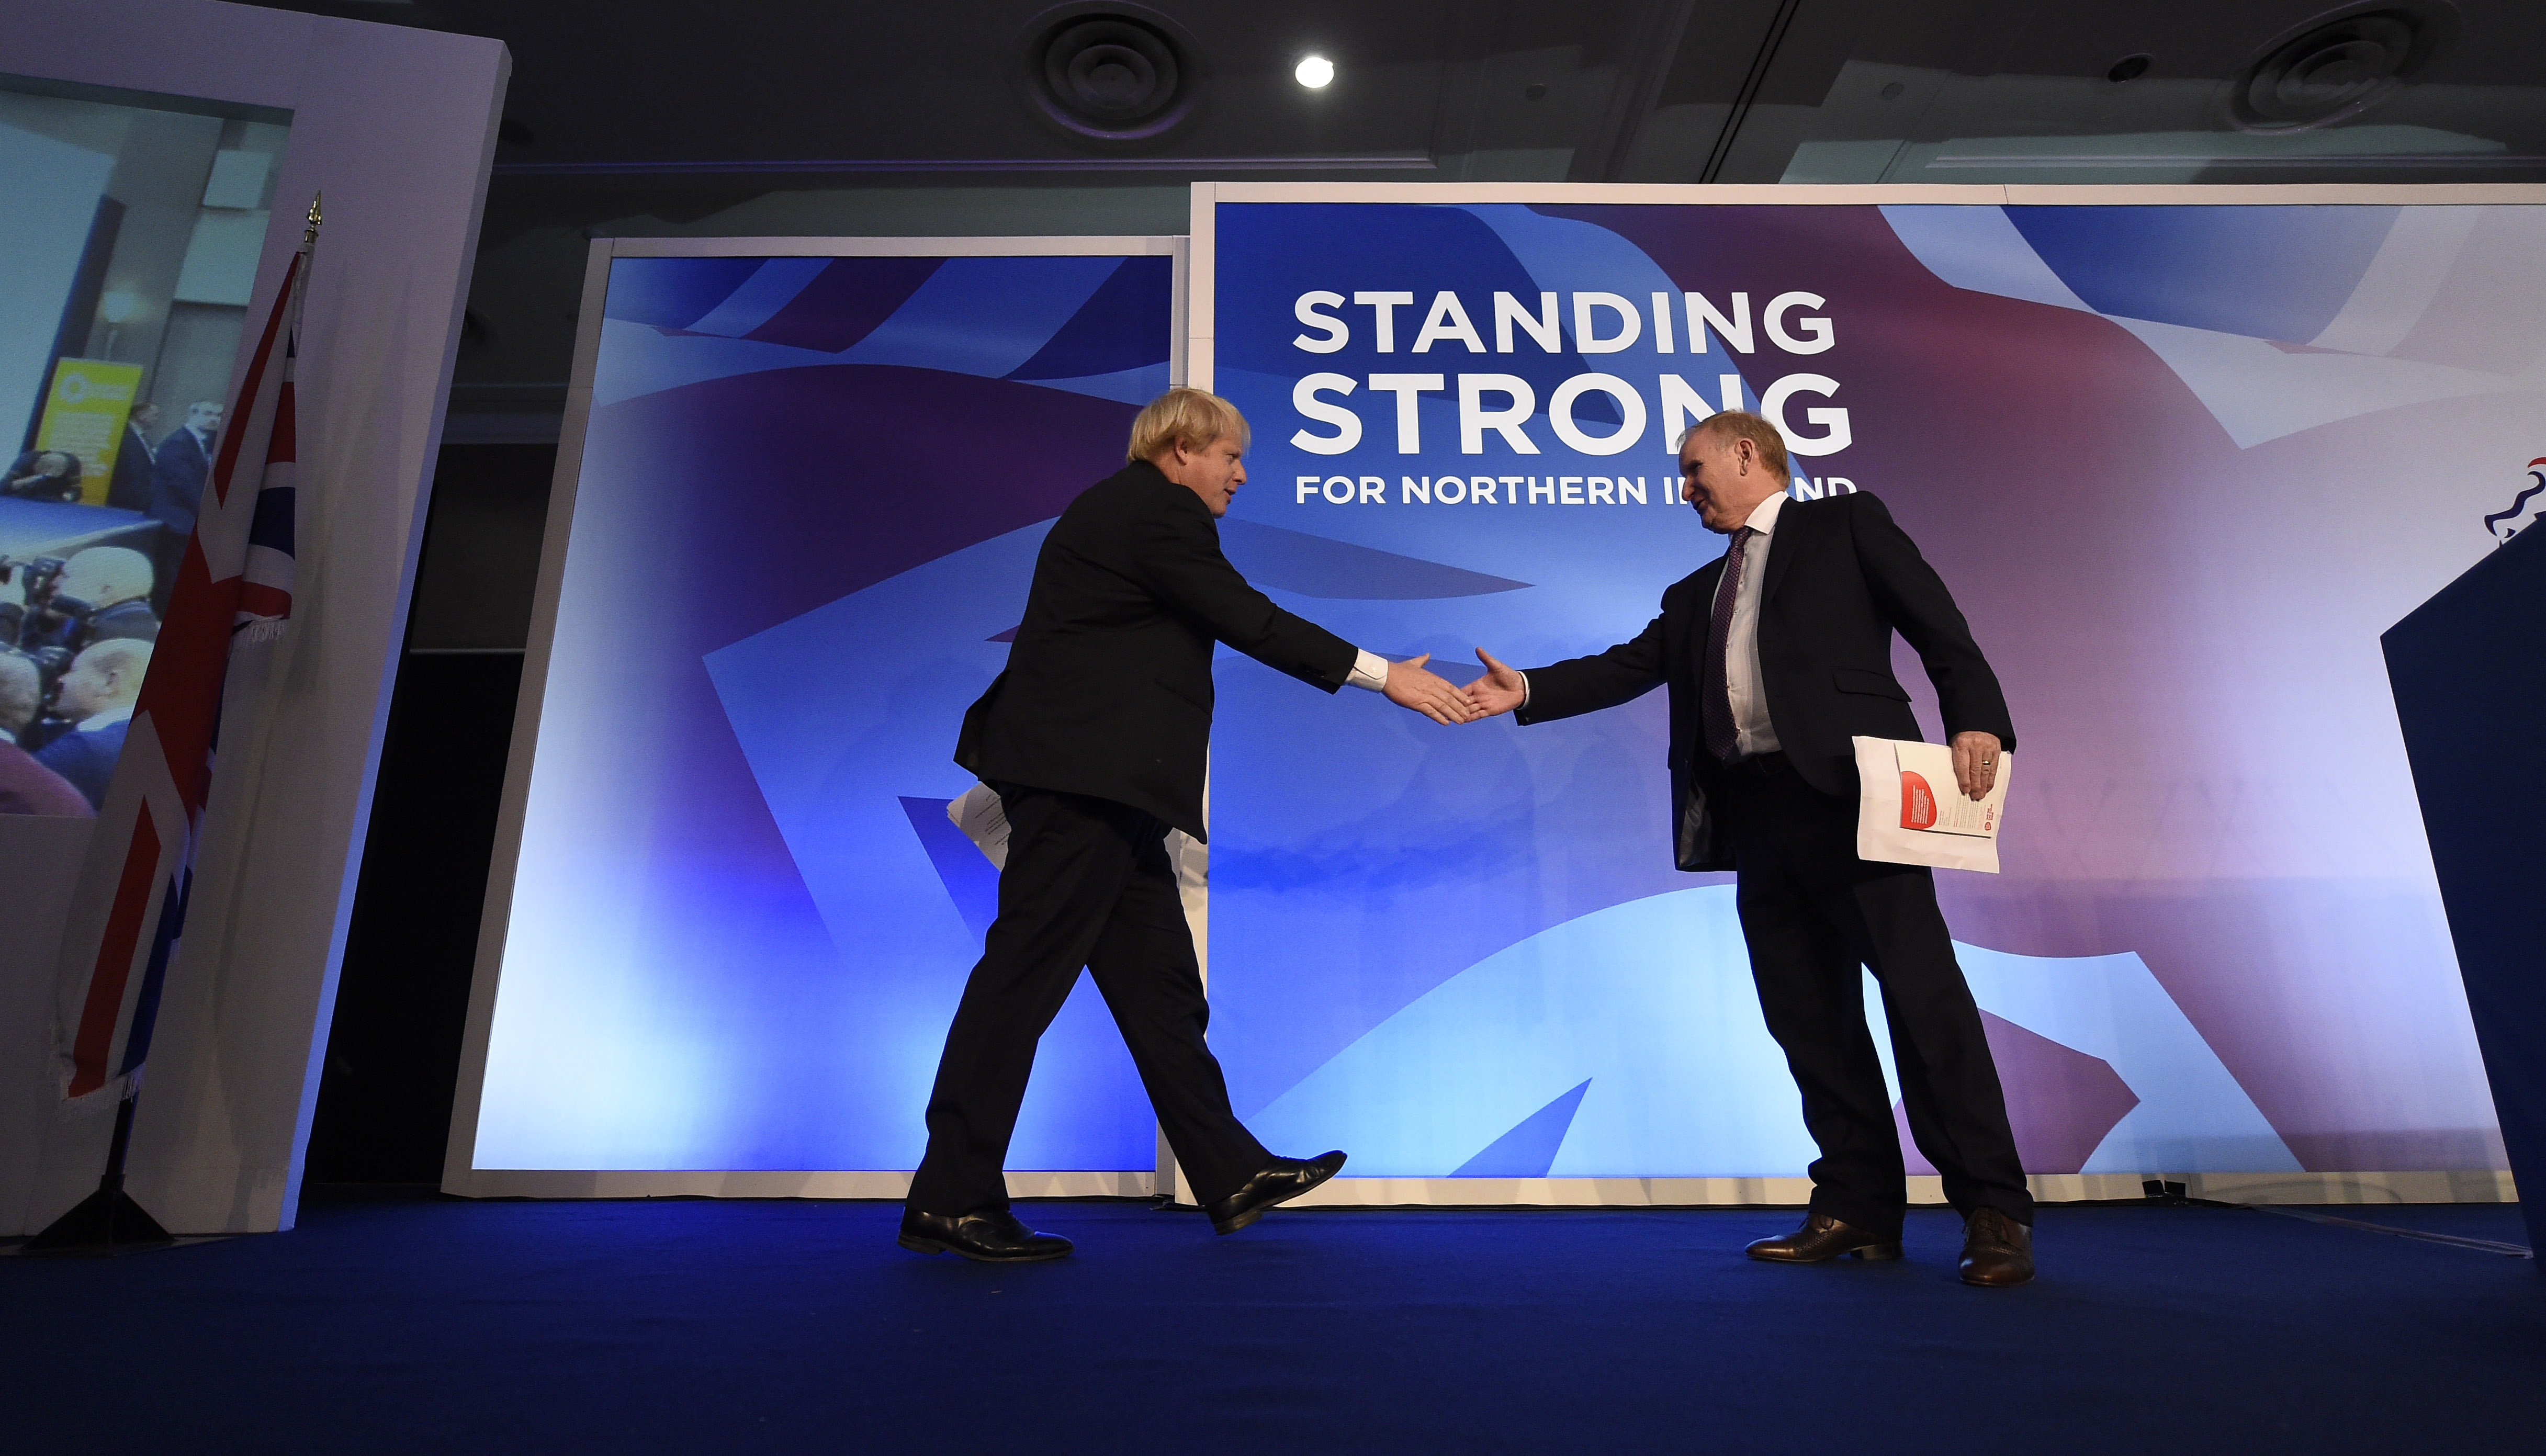 Boris Johnson (left), guest speaker during the DUP annual conference is welcomed onto the stage by Lord Morrow, DUP Chairman at the Crown Plaza Hotel in Belfast.